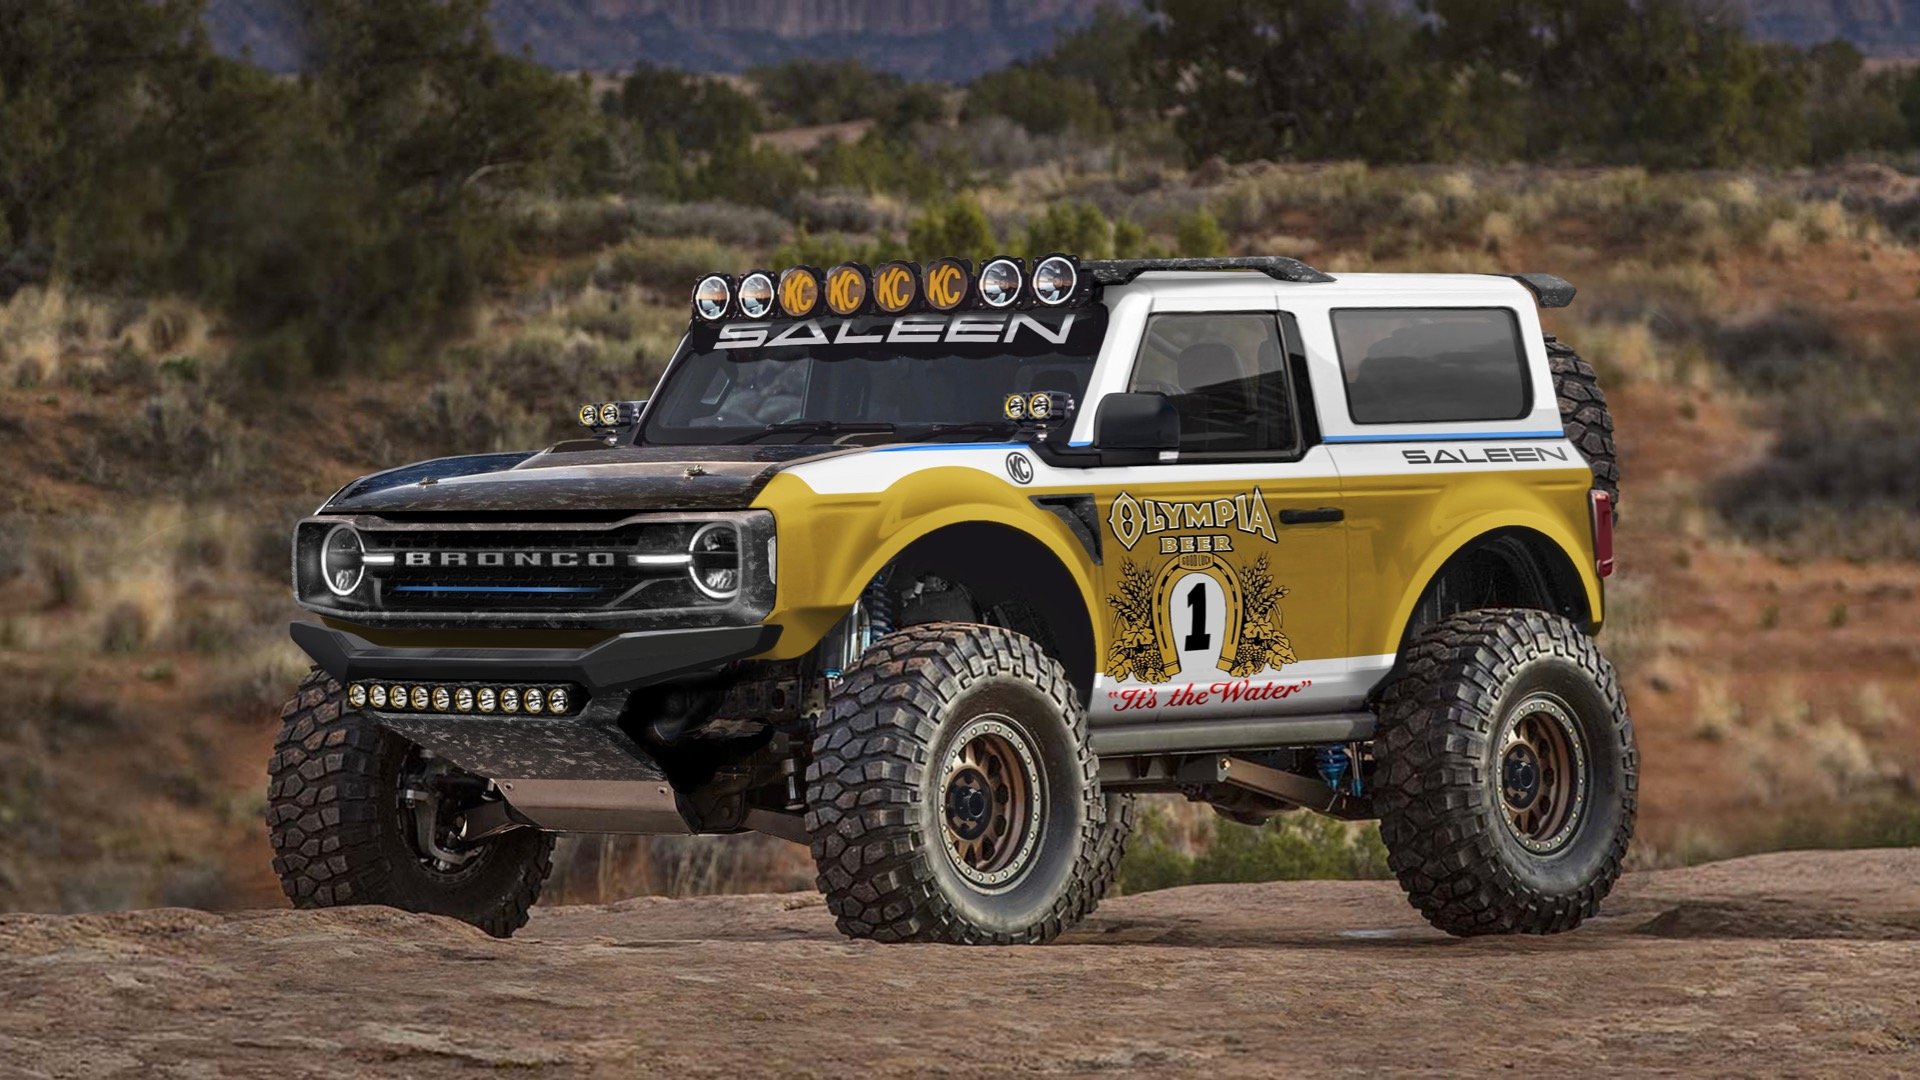 Saleen wants to turn the 2021 Ford Bronco into a desert racer